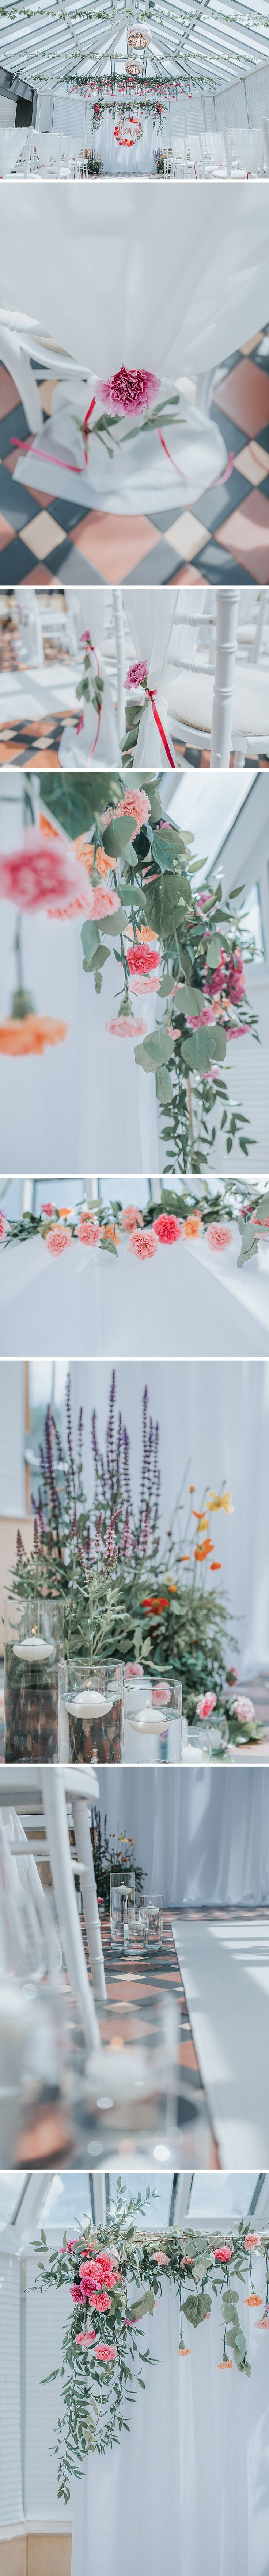 Flower and candle decor at the faversham wedding venue in Leeds | rose gold details